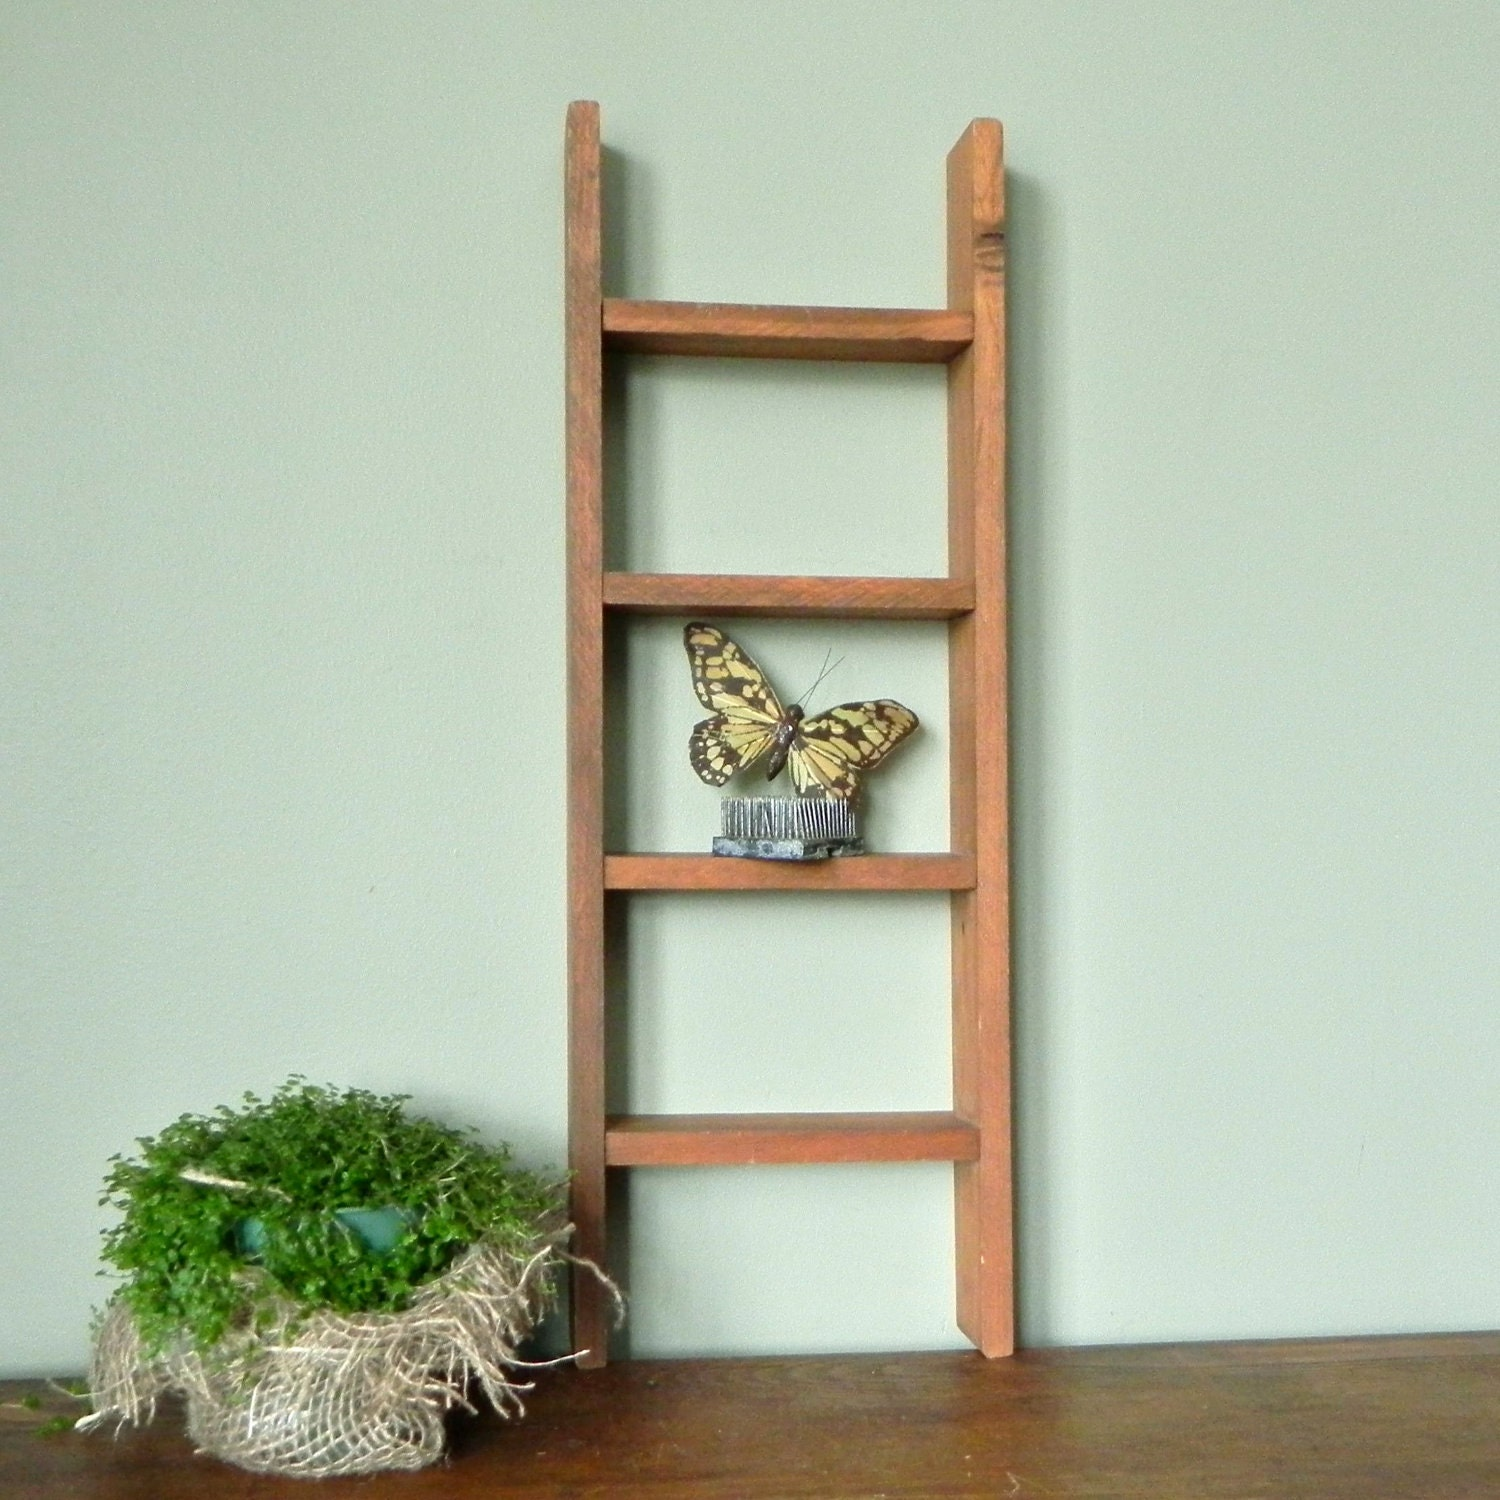 vintage ladder shelf rustic and simple perfect by jollytimeone. Black Bedroom Furniture Sets. Home Design Ideas